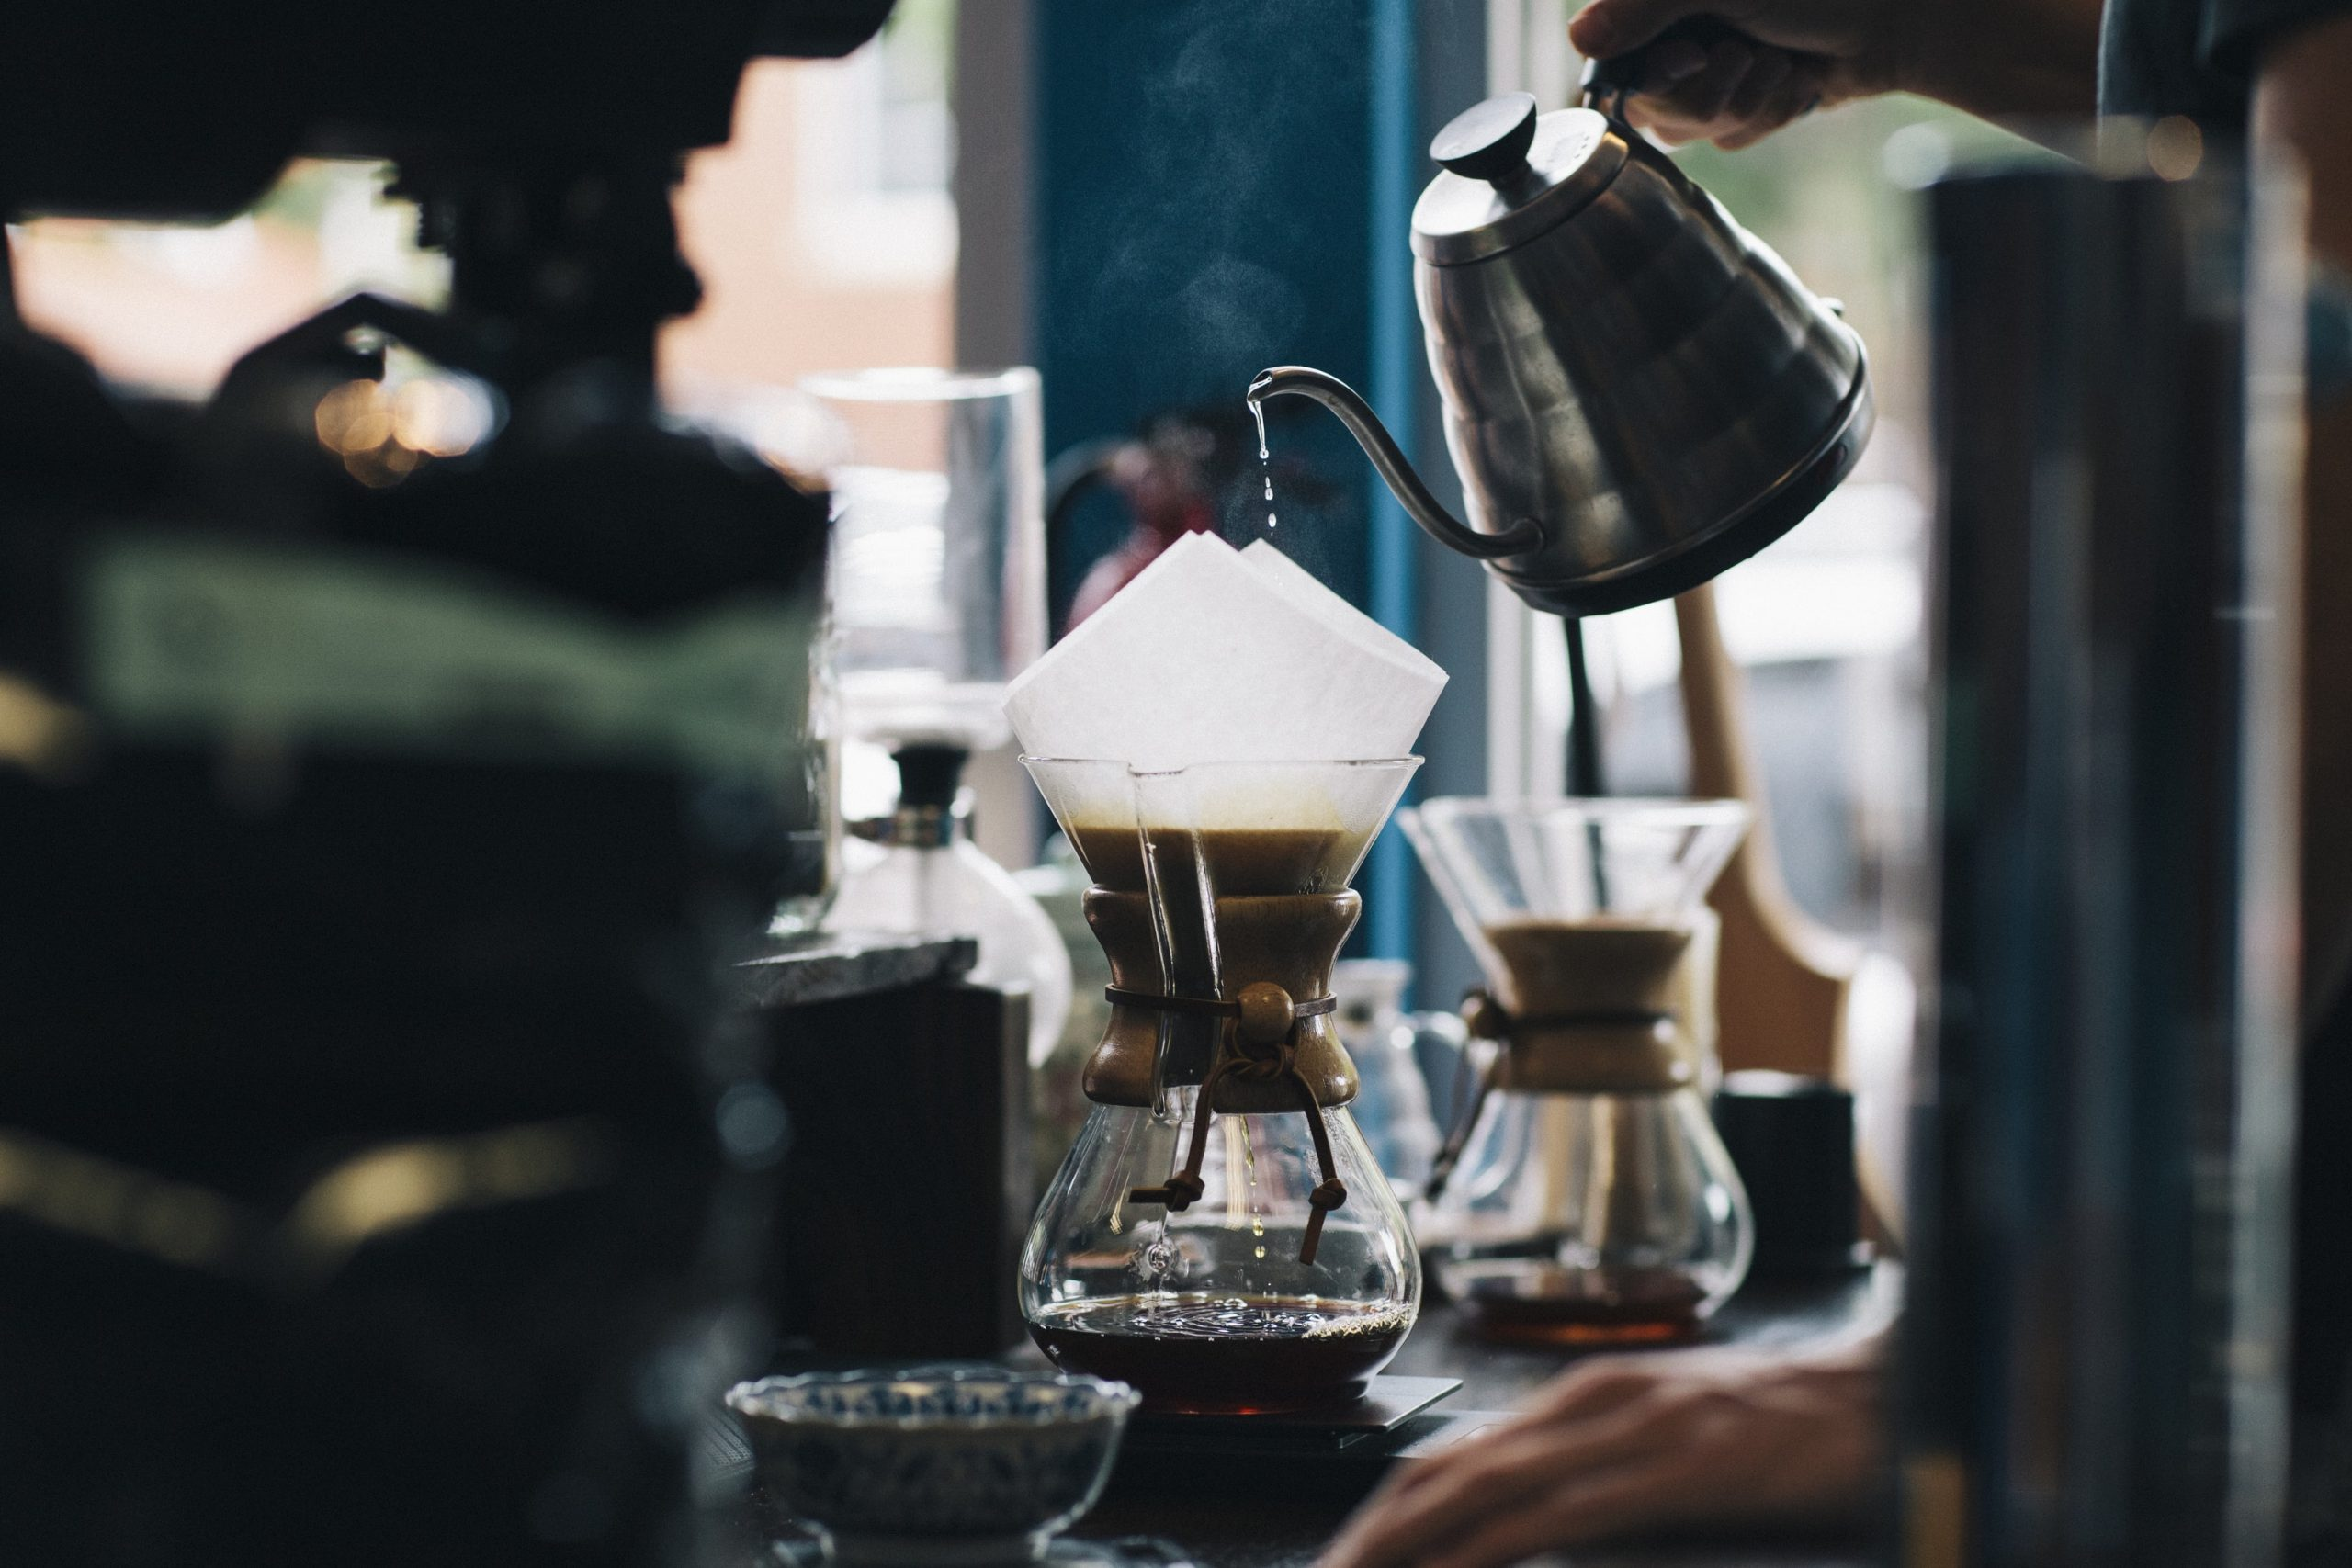 We take a look at the best electronic filter coffee machines for your needs and consideration.